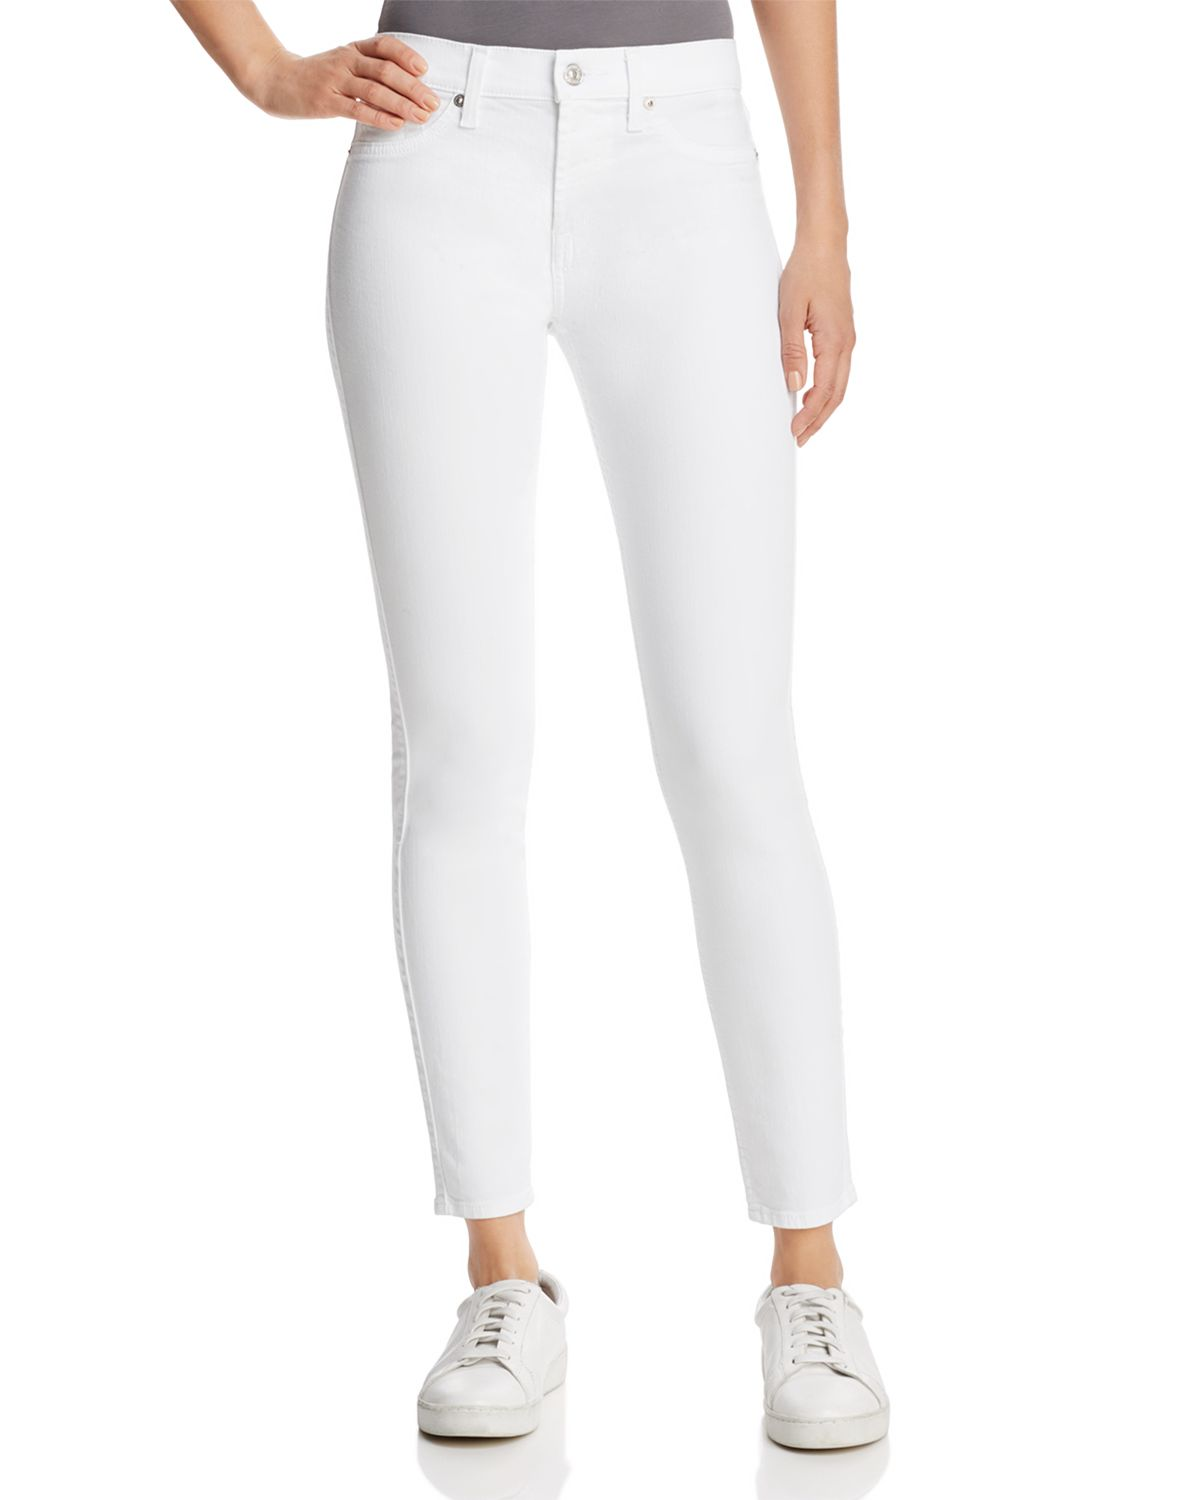 The Ankle Skinny Jeans In Clean White by 7 For All Mankind